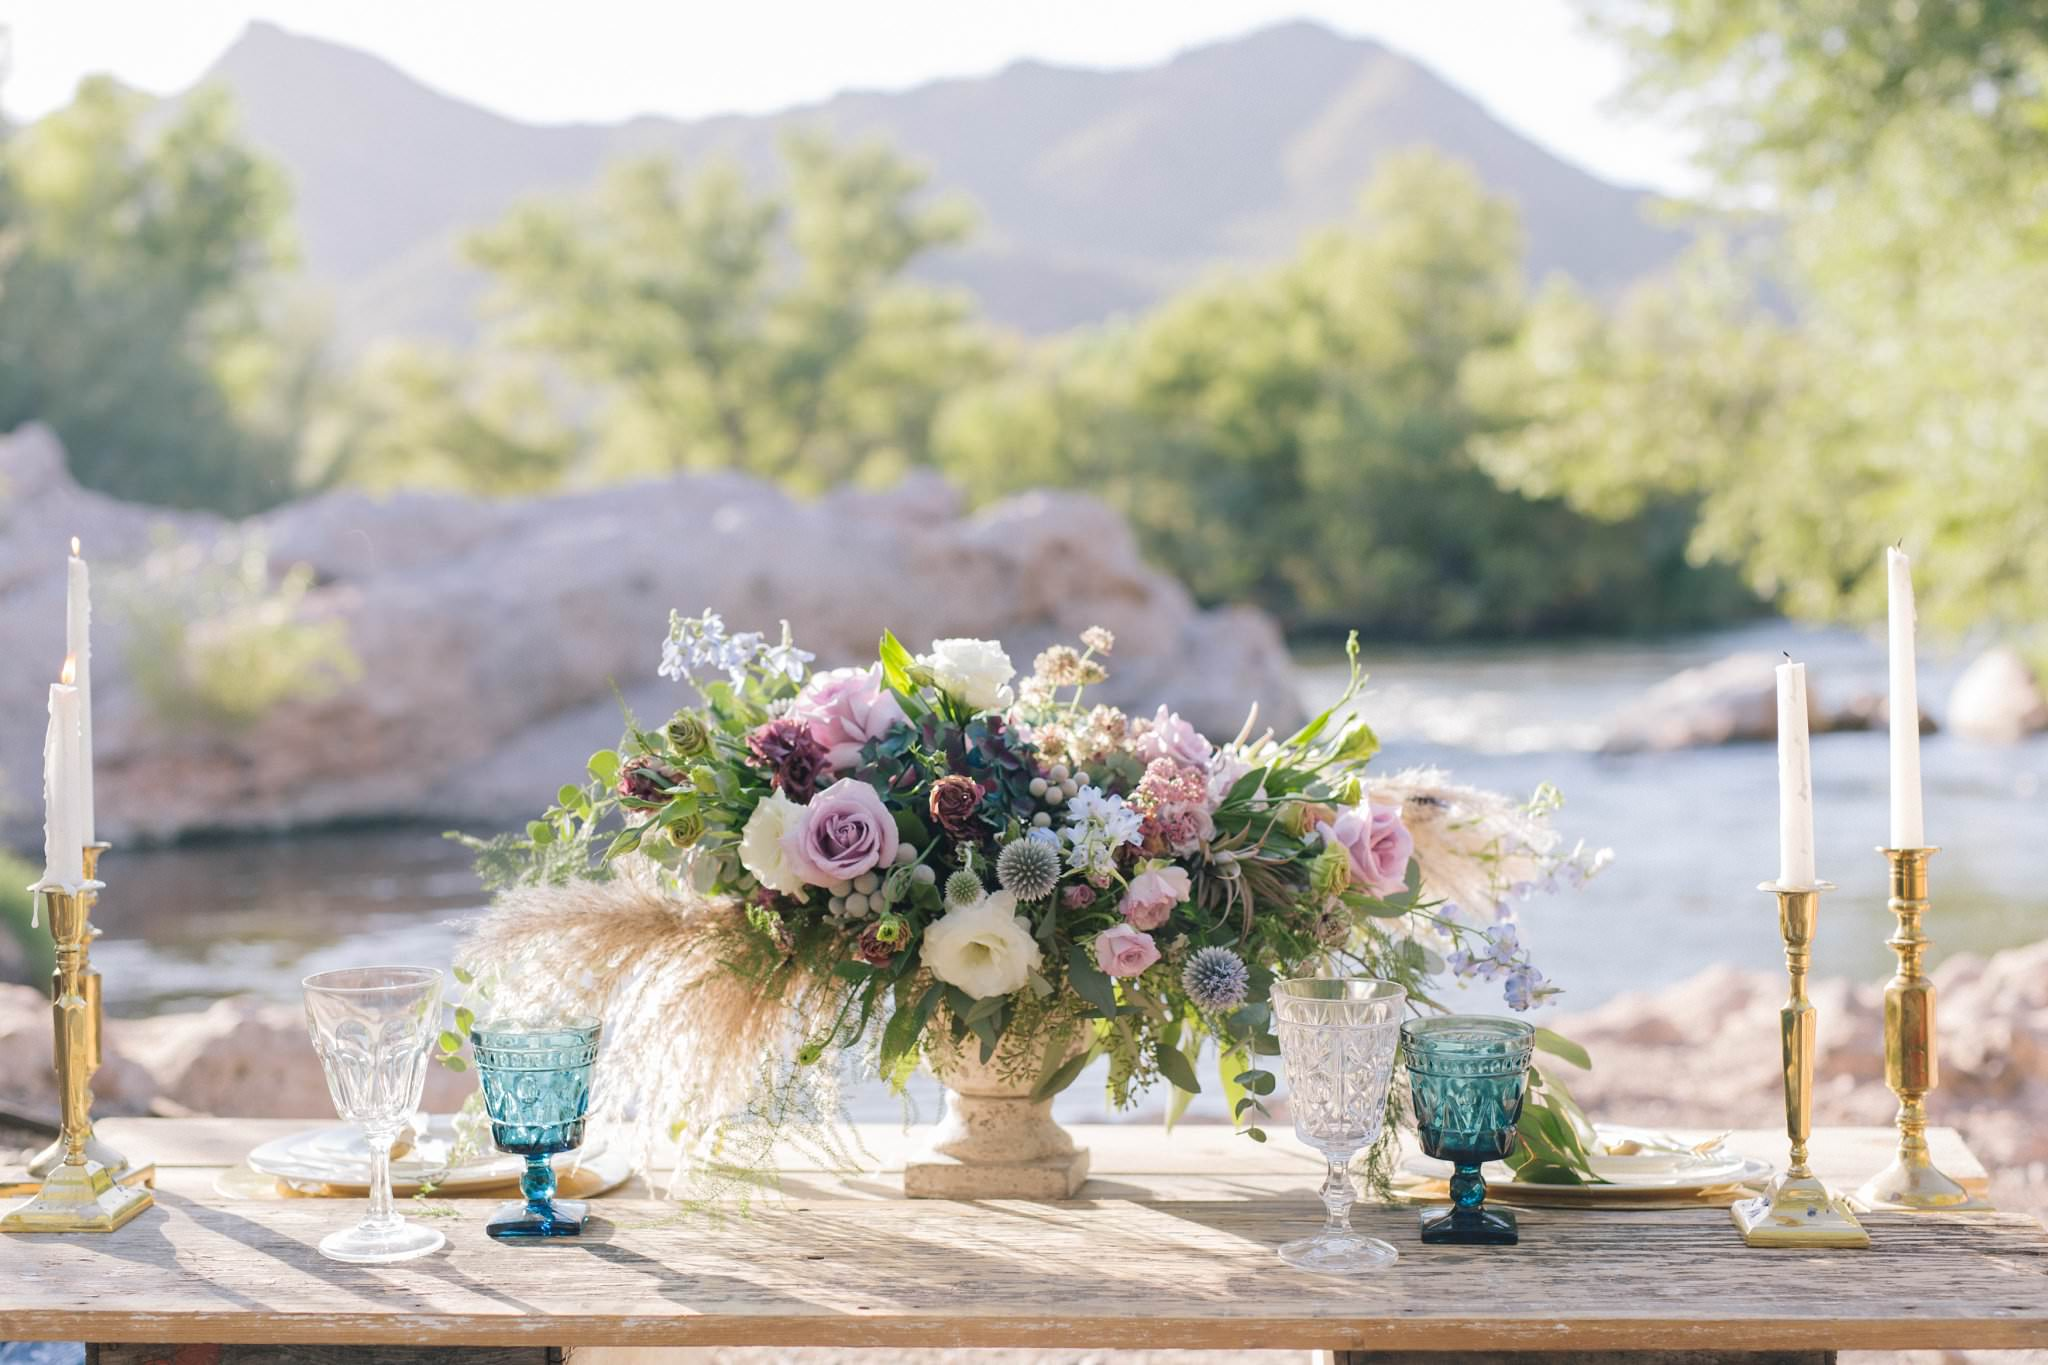 Arizona Salt River rustic wedding inspiration